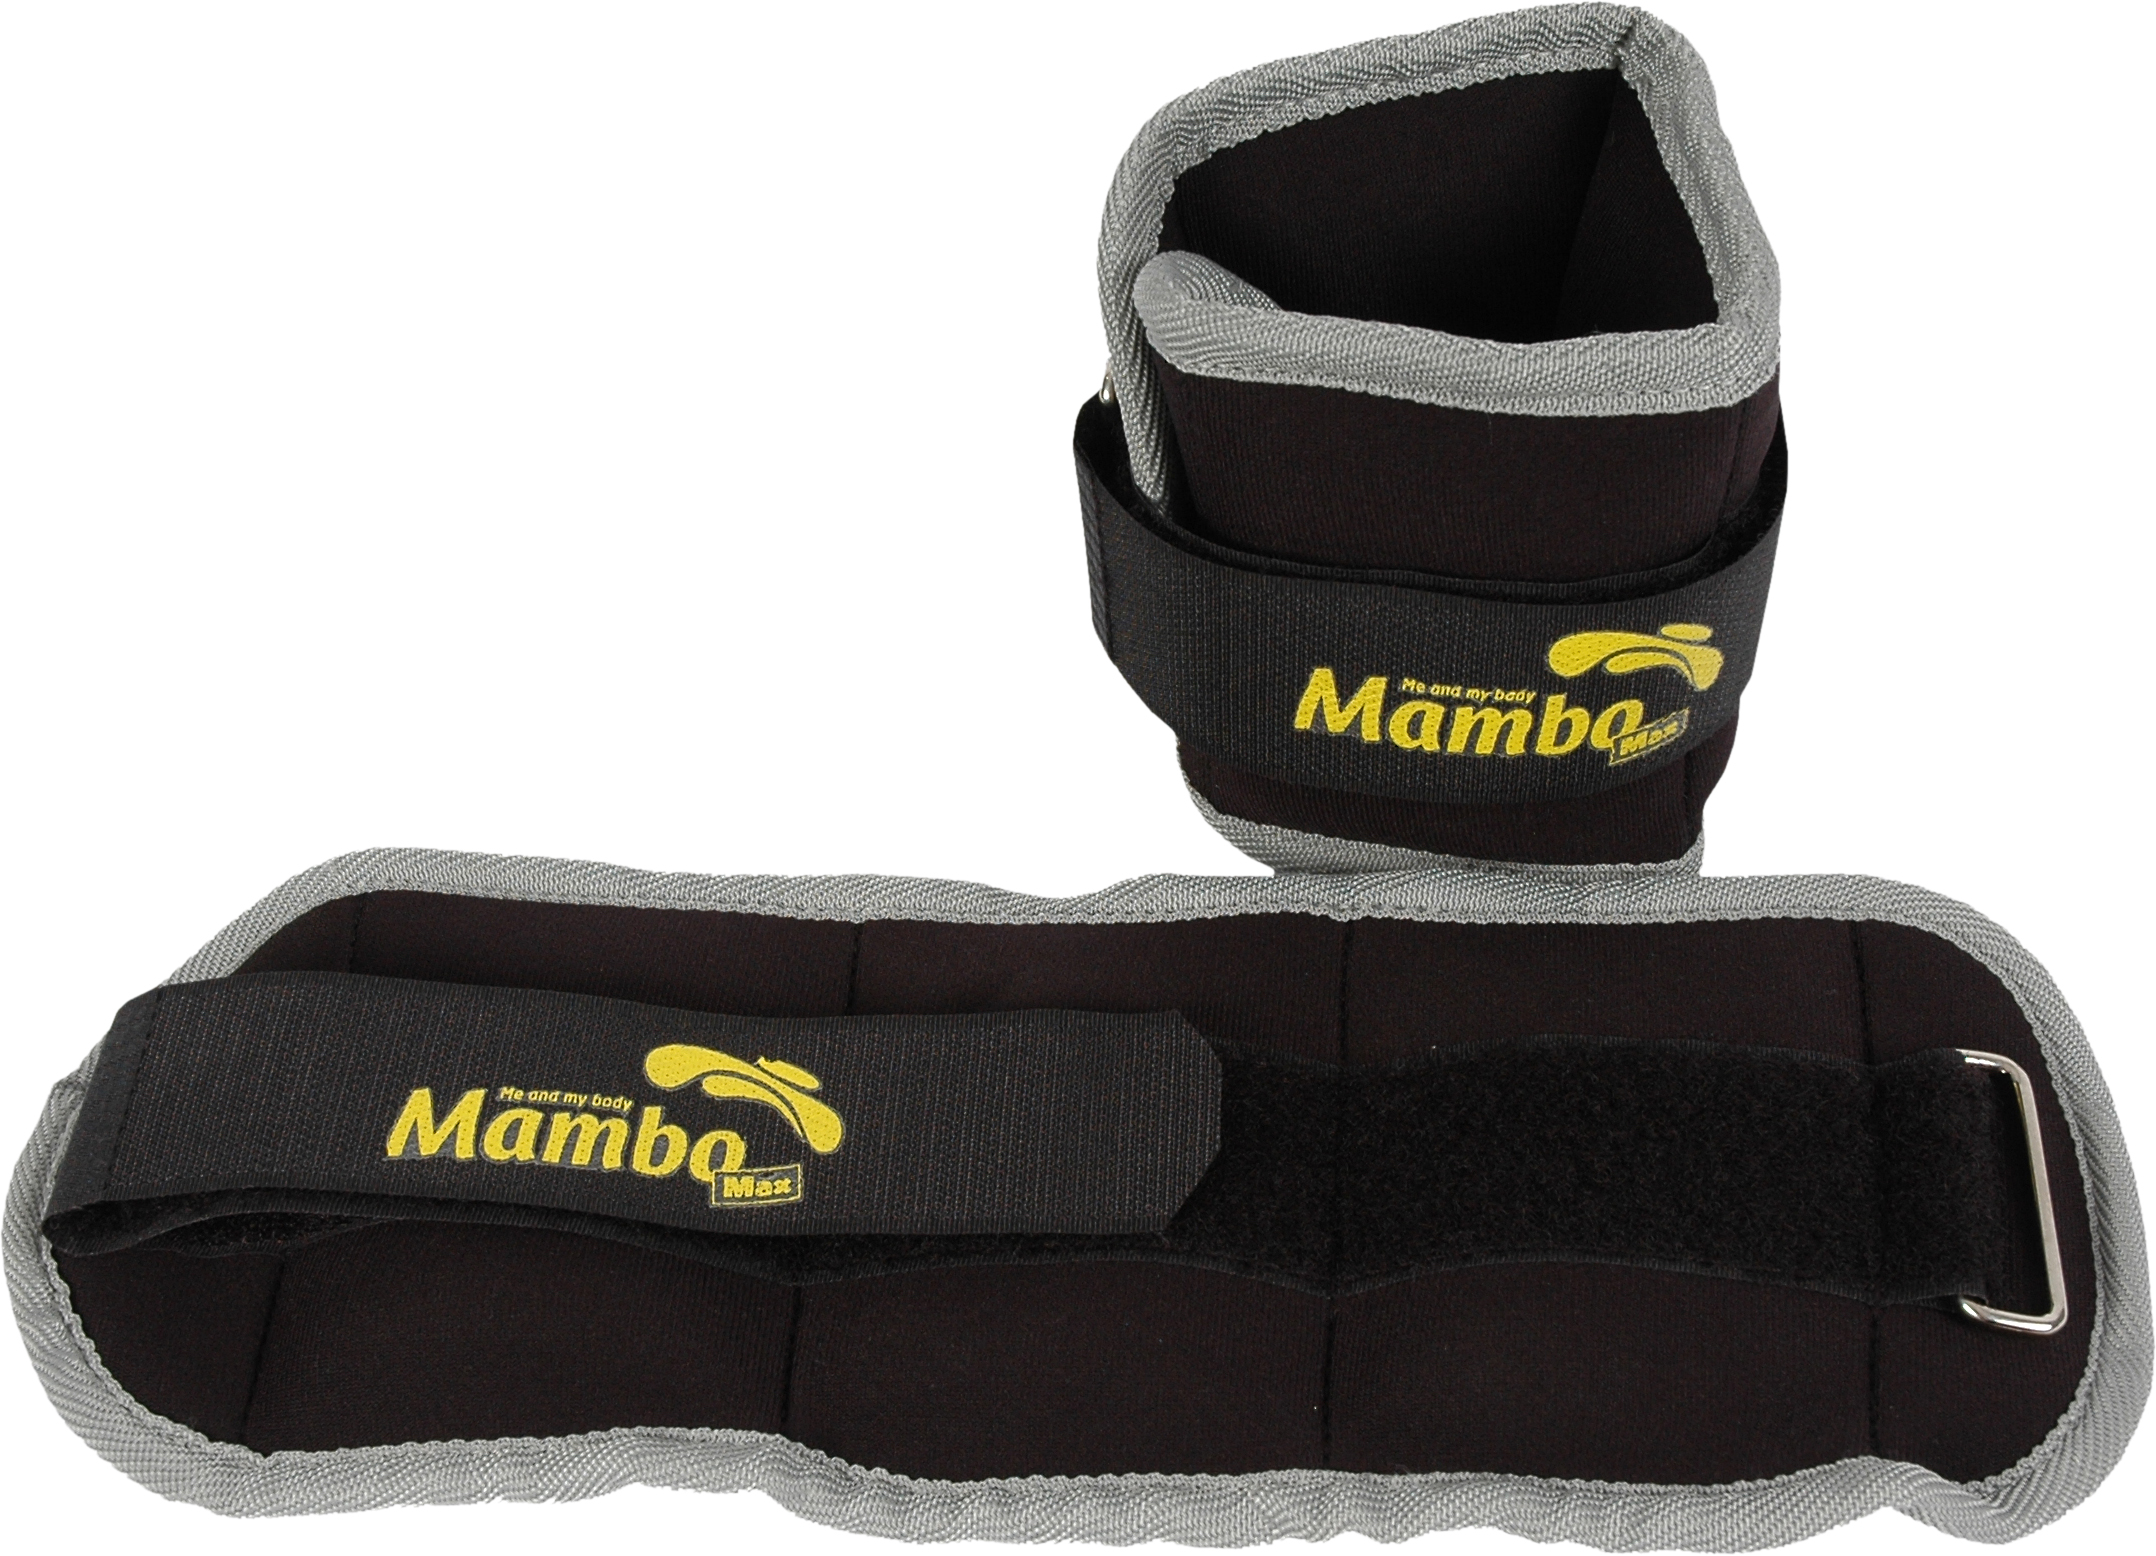 WRIST & ANKLE WEIGHTS 0.5KGS PAIR